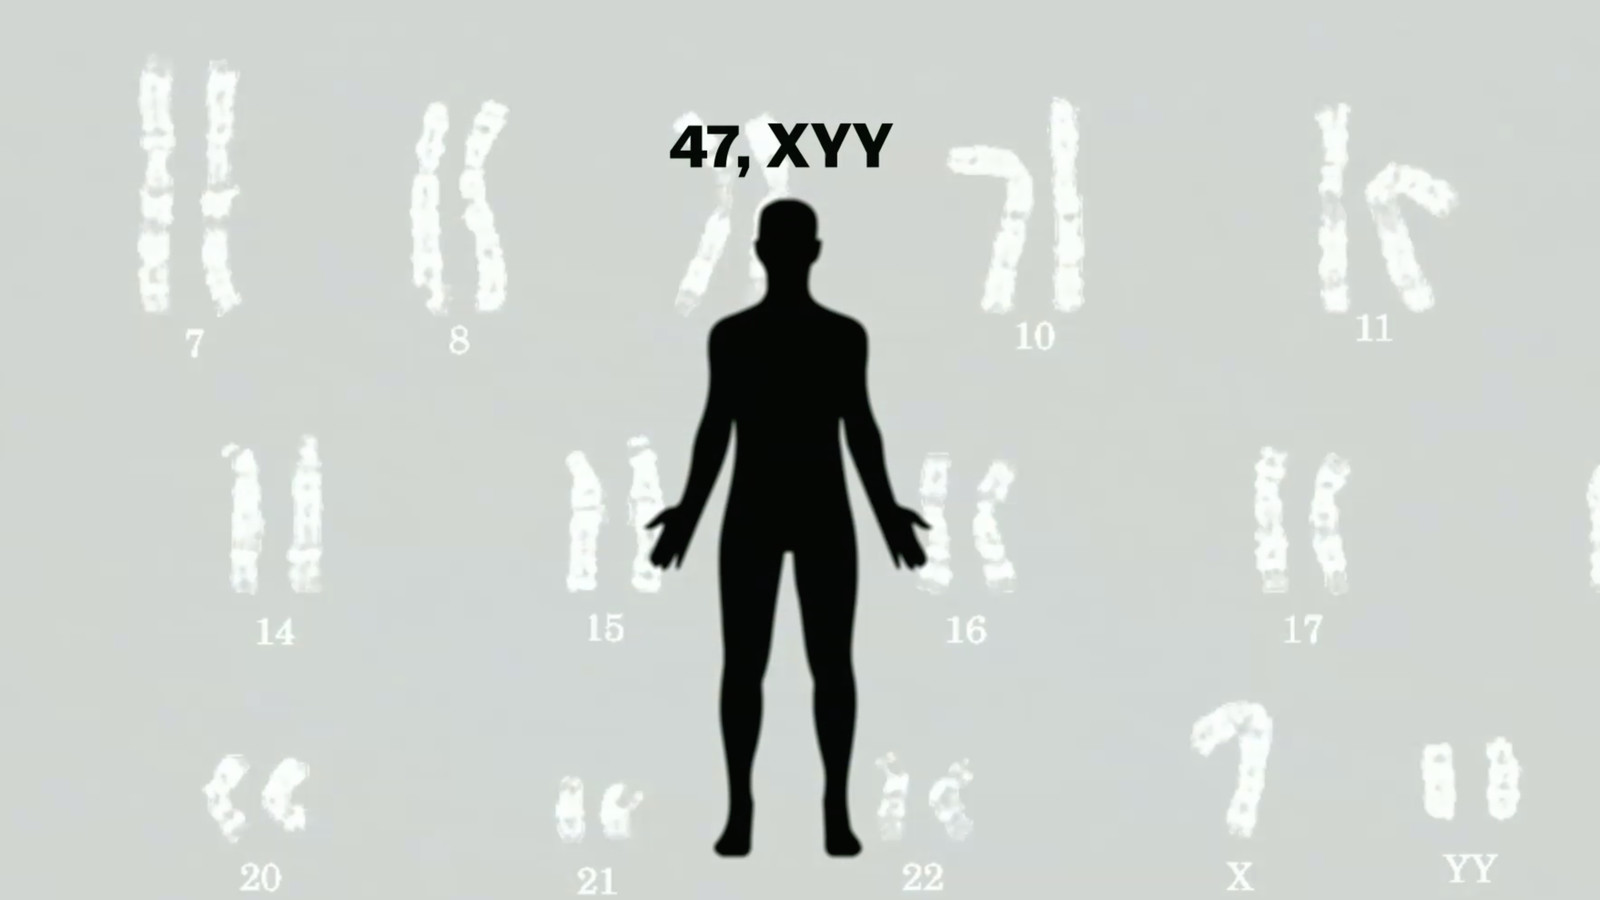 Diagnosis and mortality in 47,XYY persons: a registry study